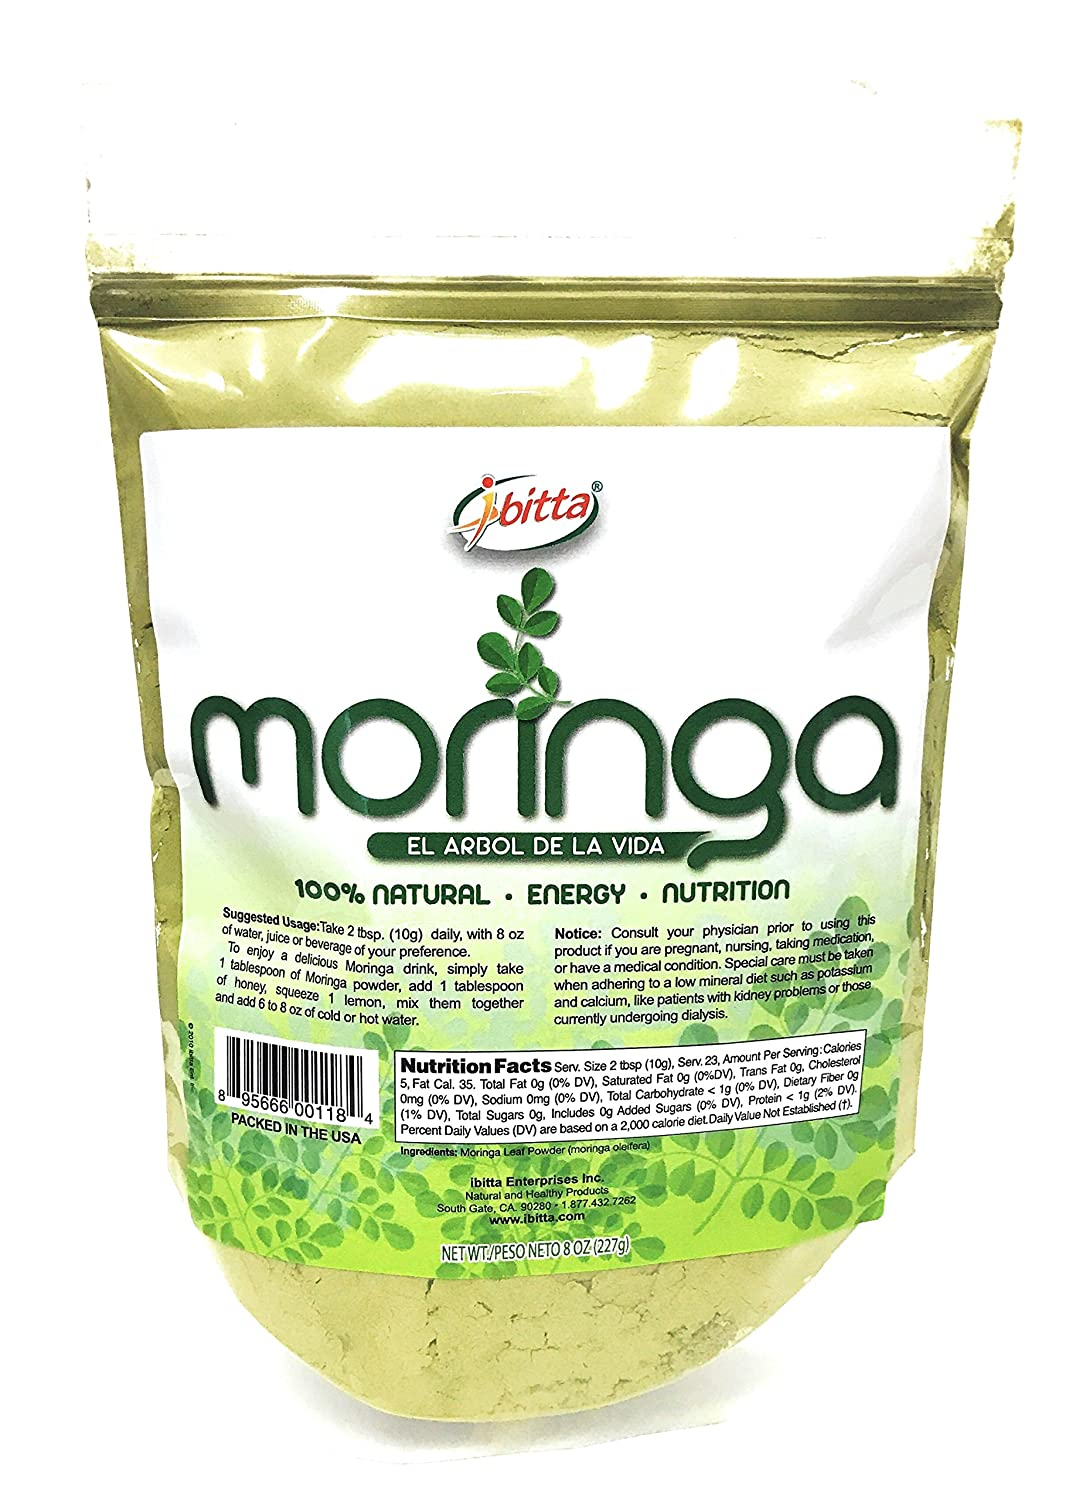 Amazon.com: Ibitta® Moringa Green Leaf Powder 100% Natural Pure Raw Moringa Oleifera Non-GMO for Nutrition & Energy Boost 8 oz: Health & Personal Care